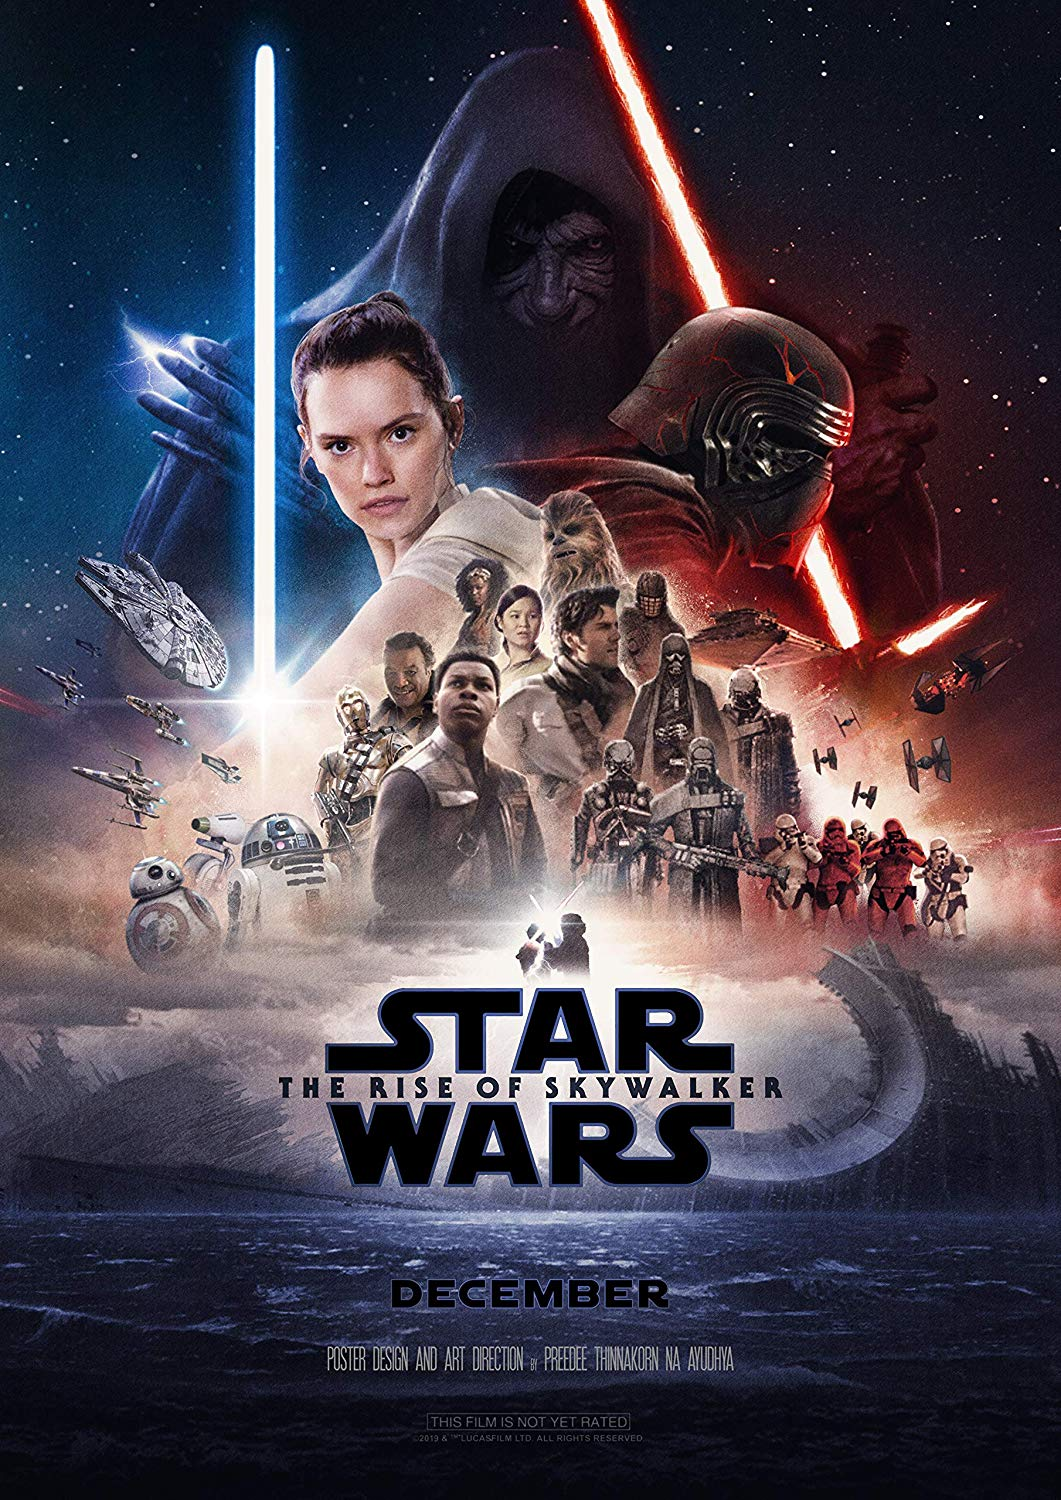 New Look At Star Wars The Rise Of Skywalker